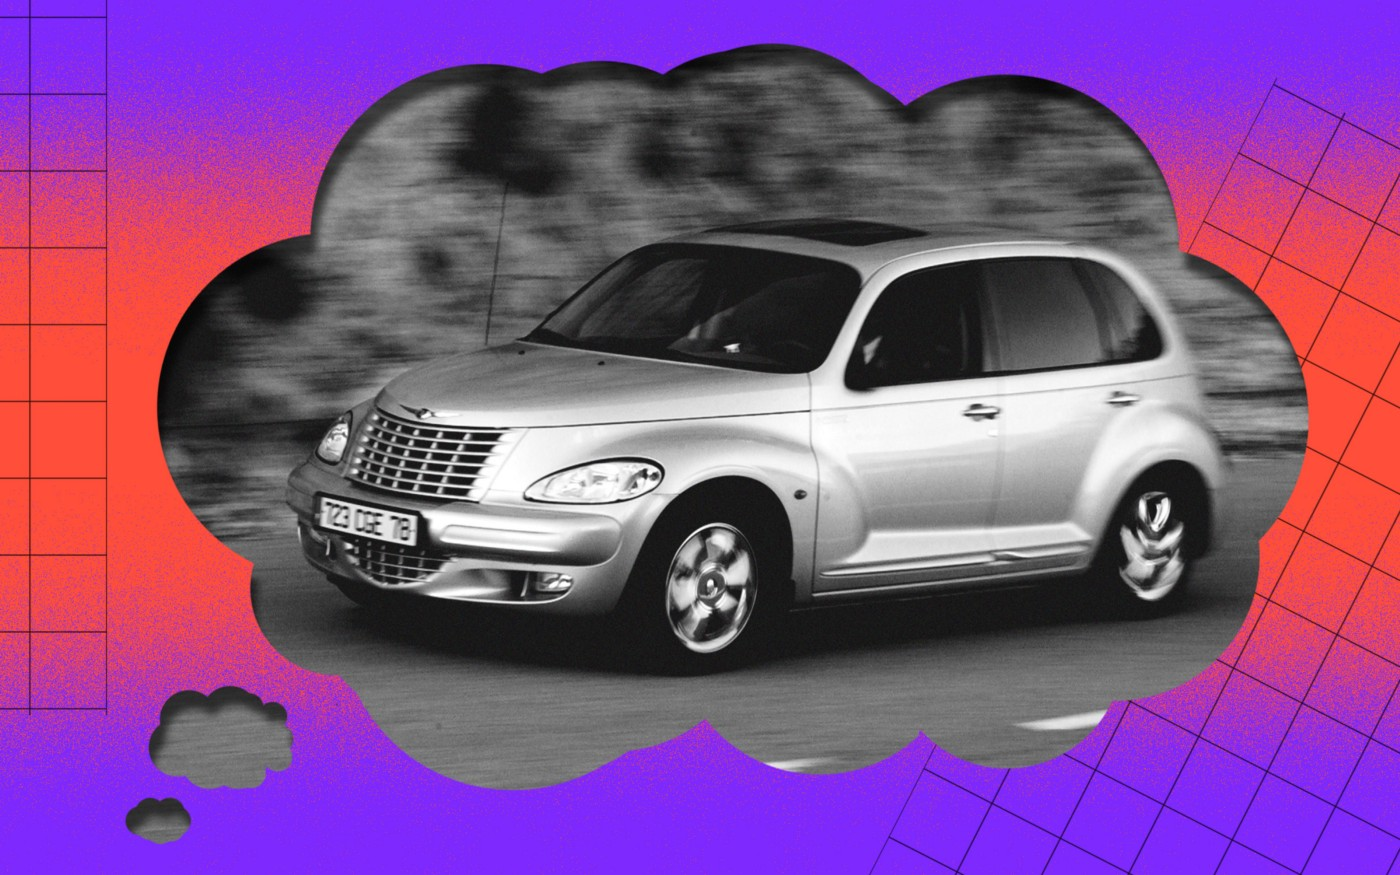 A black and white photo of a PT Cruiser photoshopped onto a thought bubble.